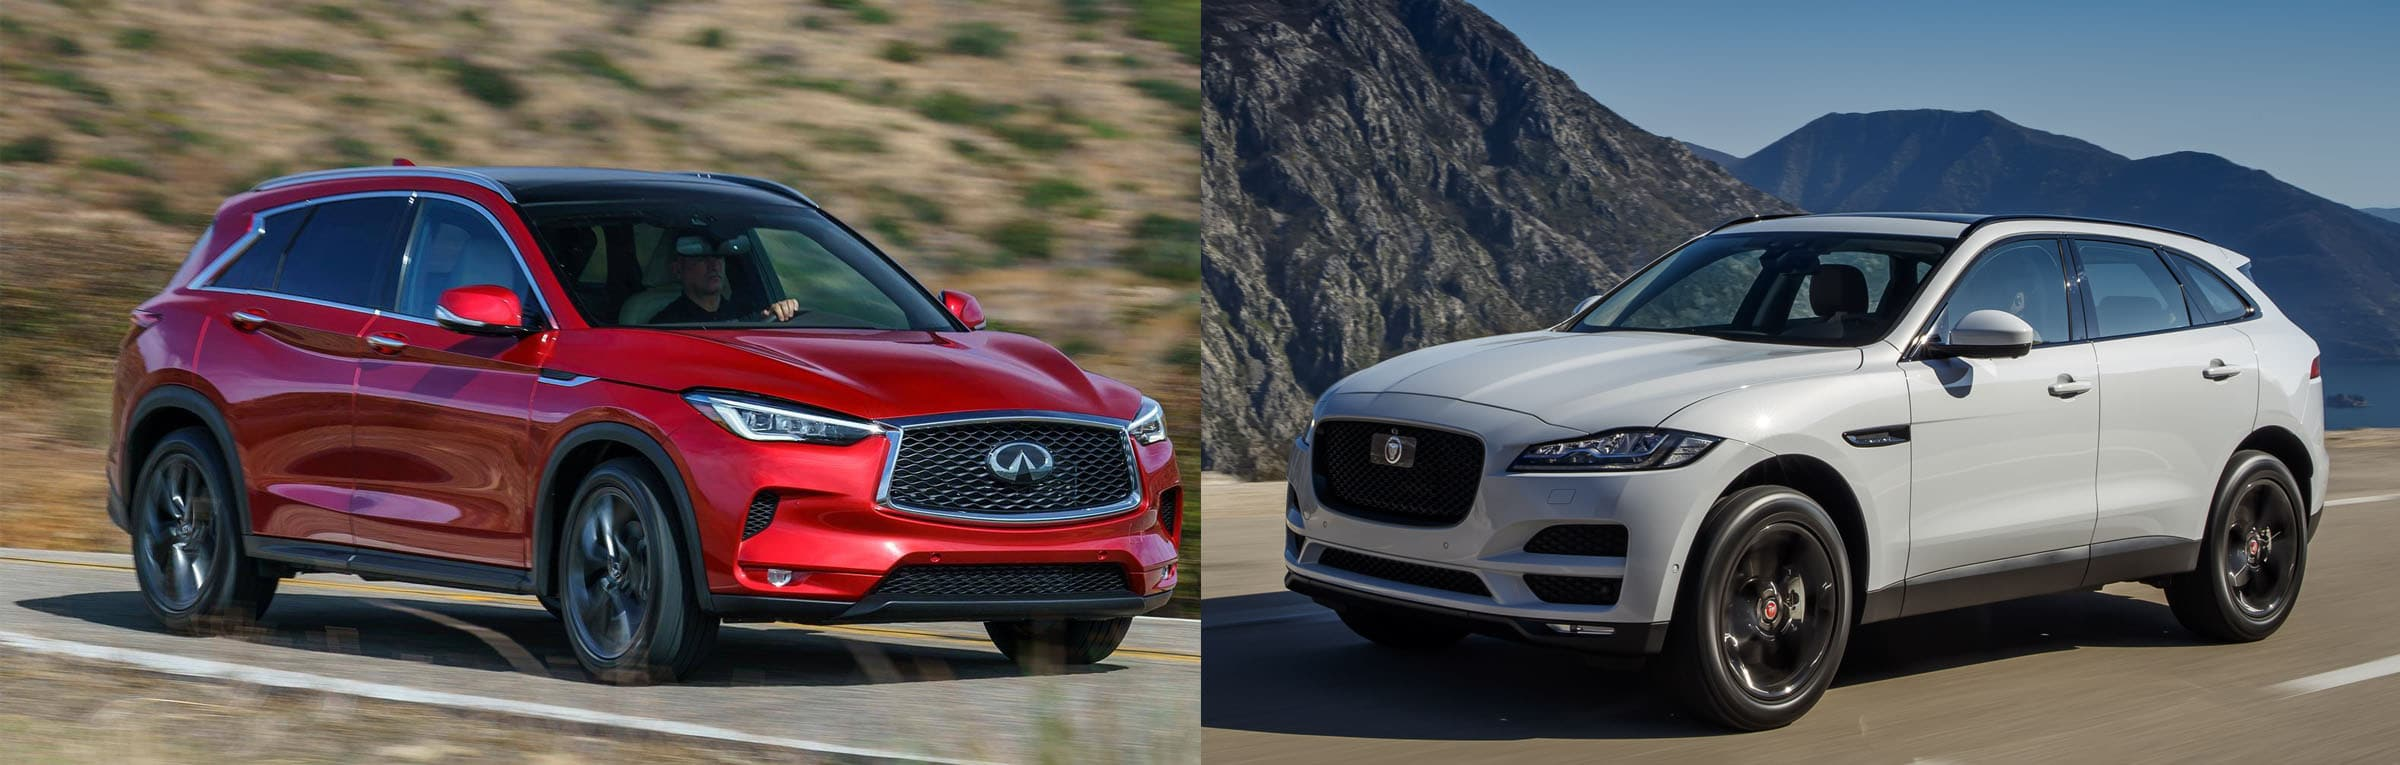 2019 Jaguar F Pace Vs 2019 Infiniti Qx50 Quick Comparison